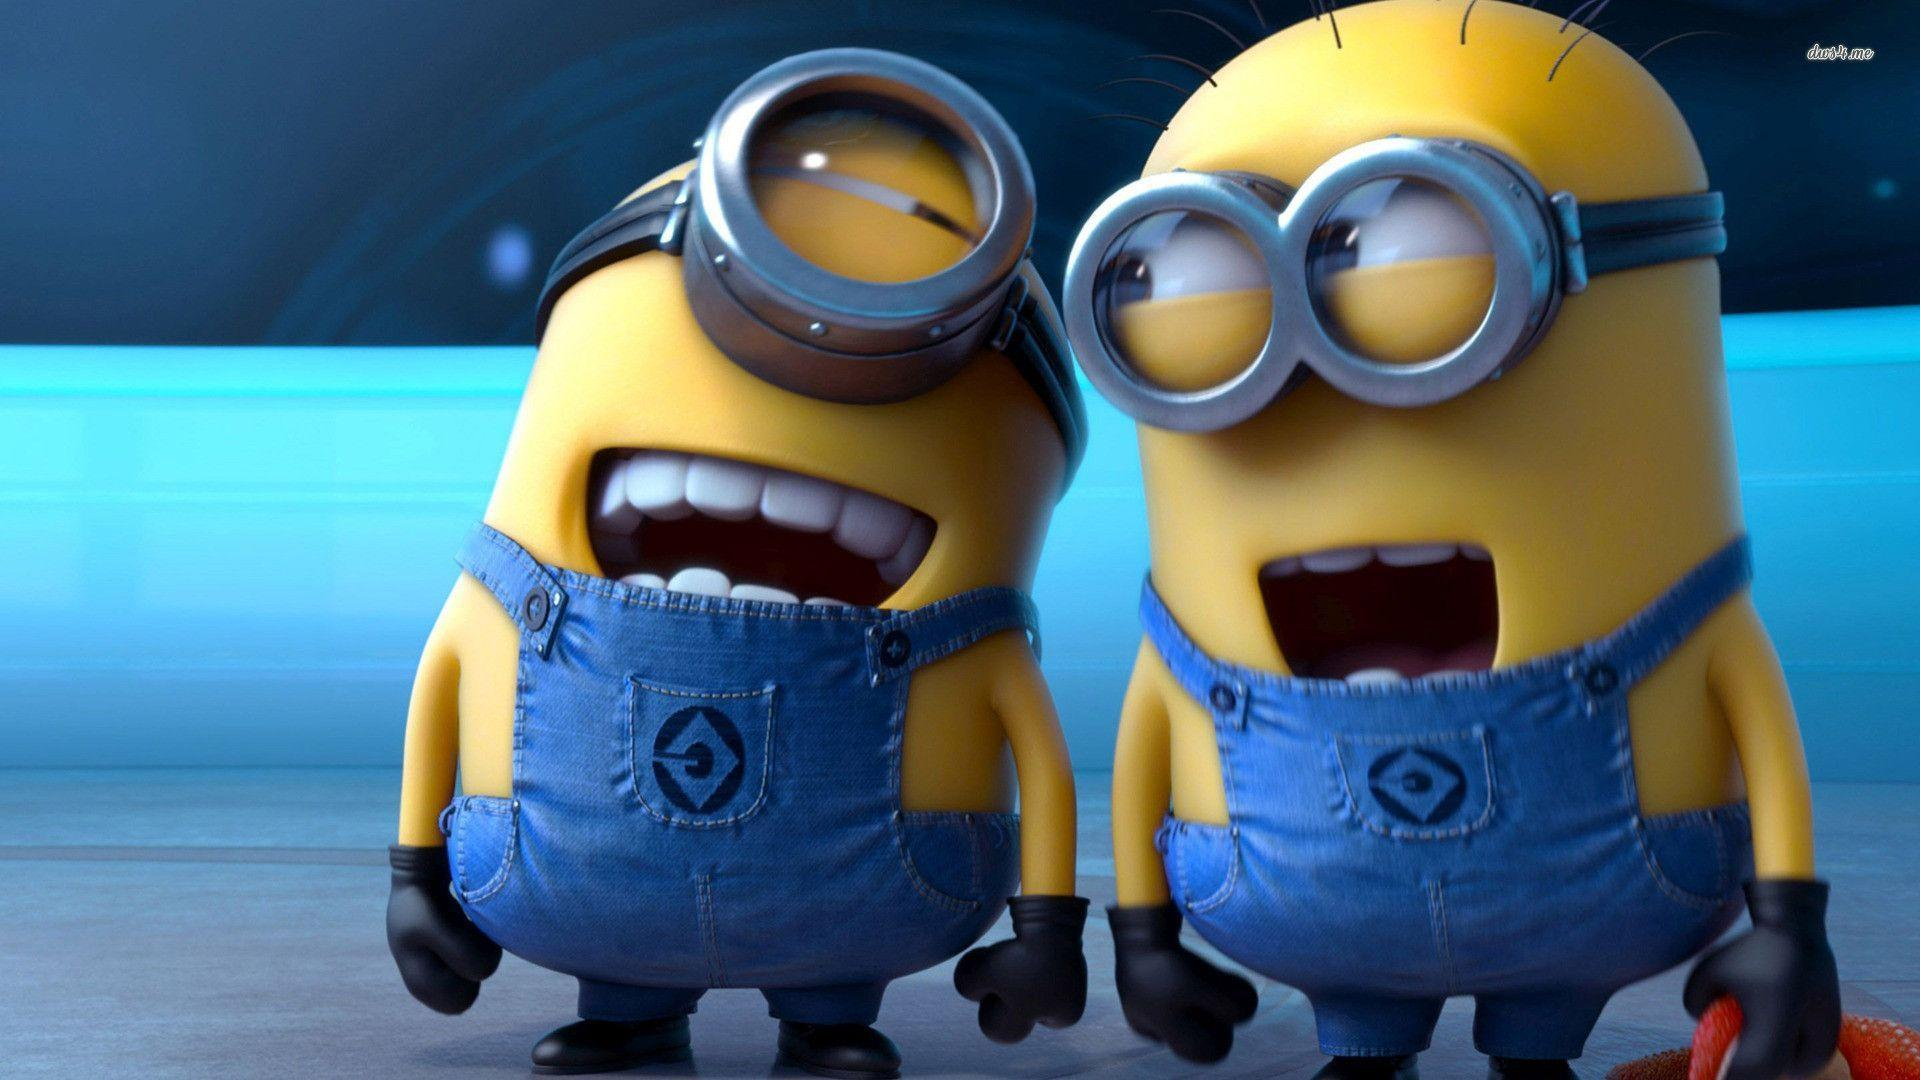 Despicable Me 2 Laughing Minions wallpaper - Cartoon wallpapers - #